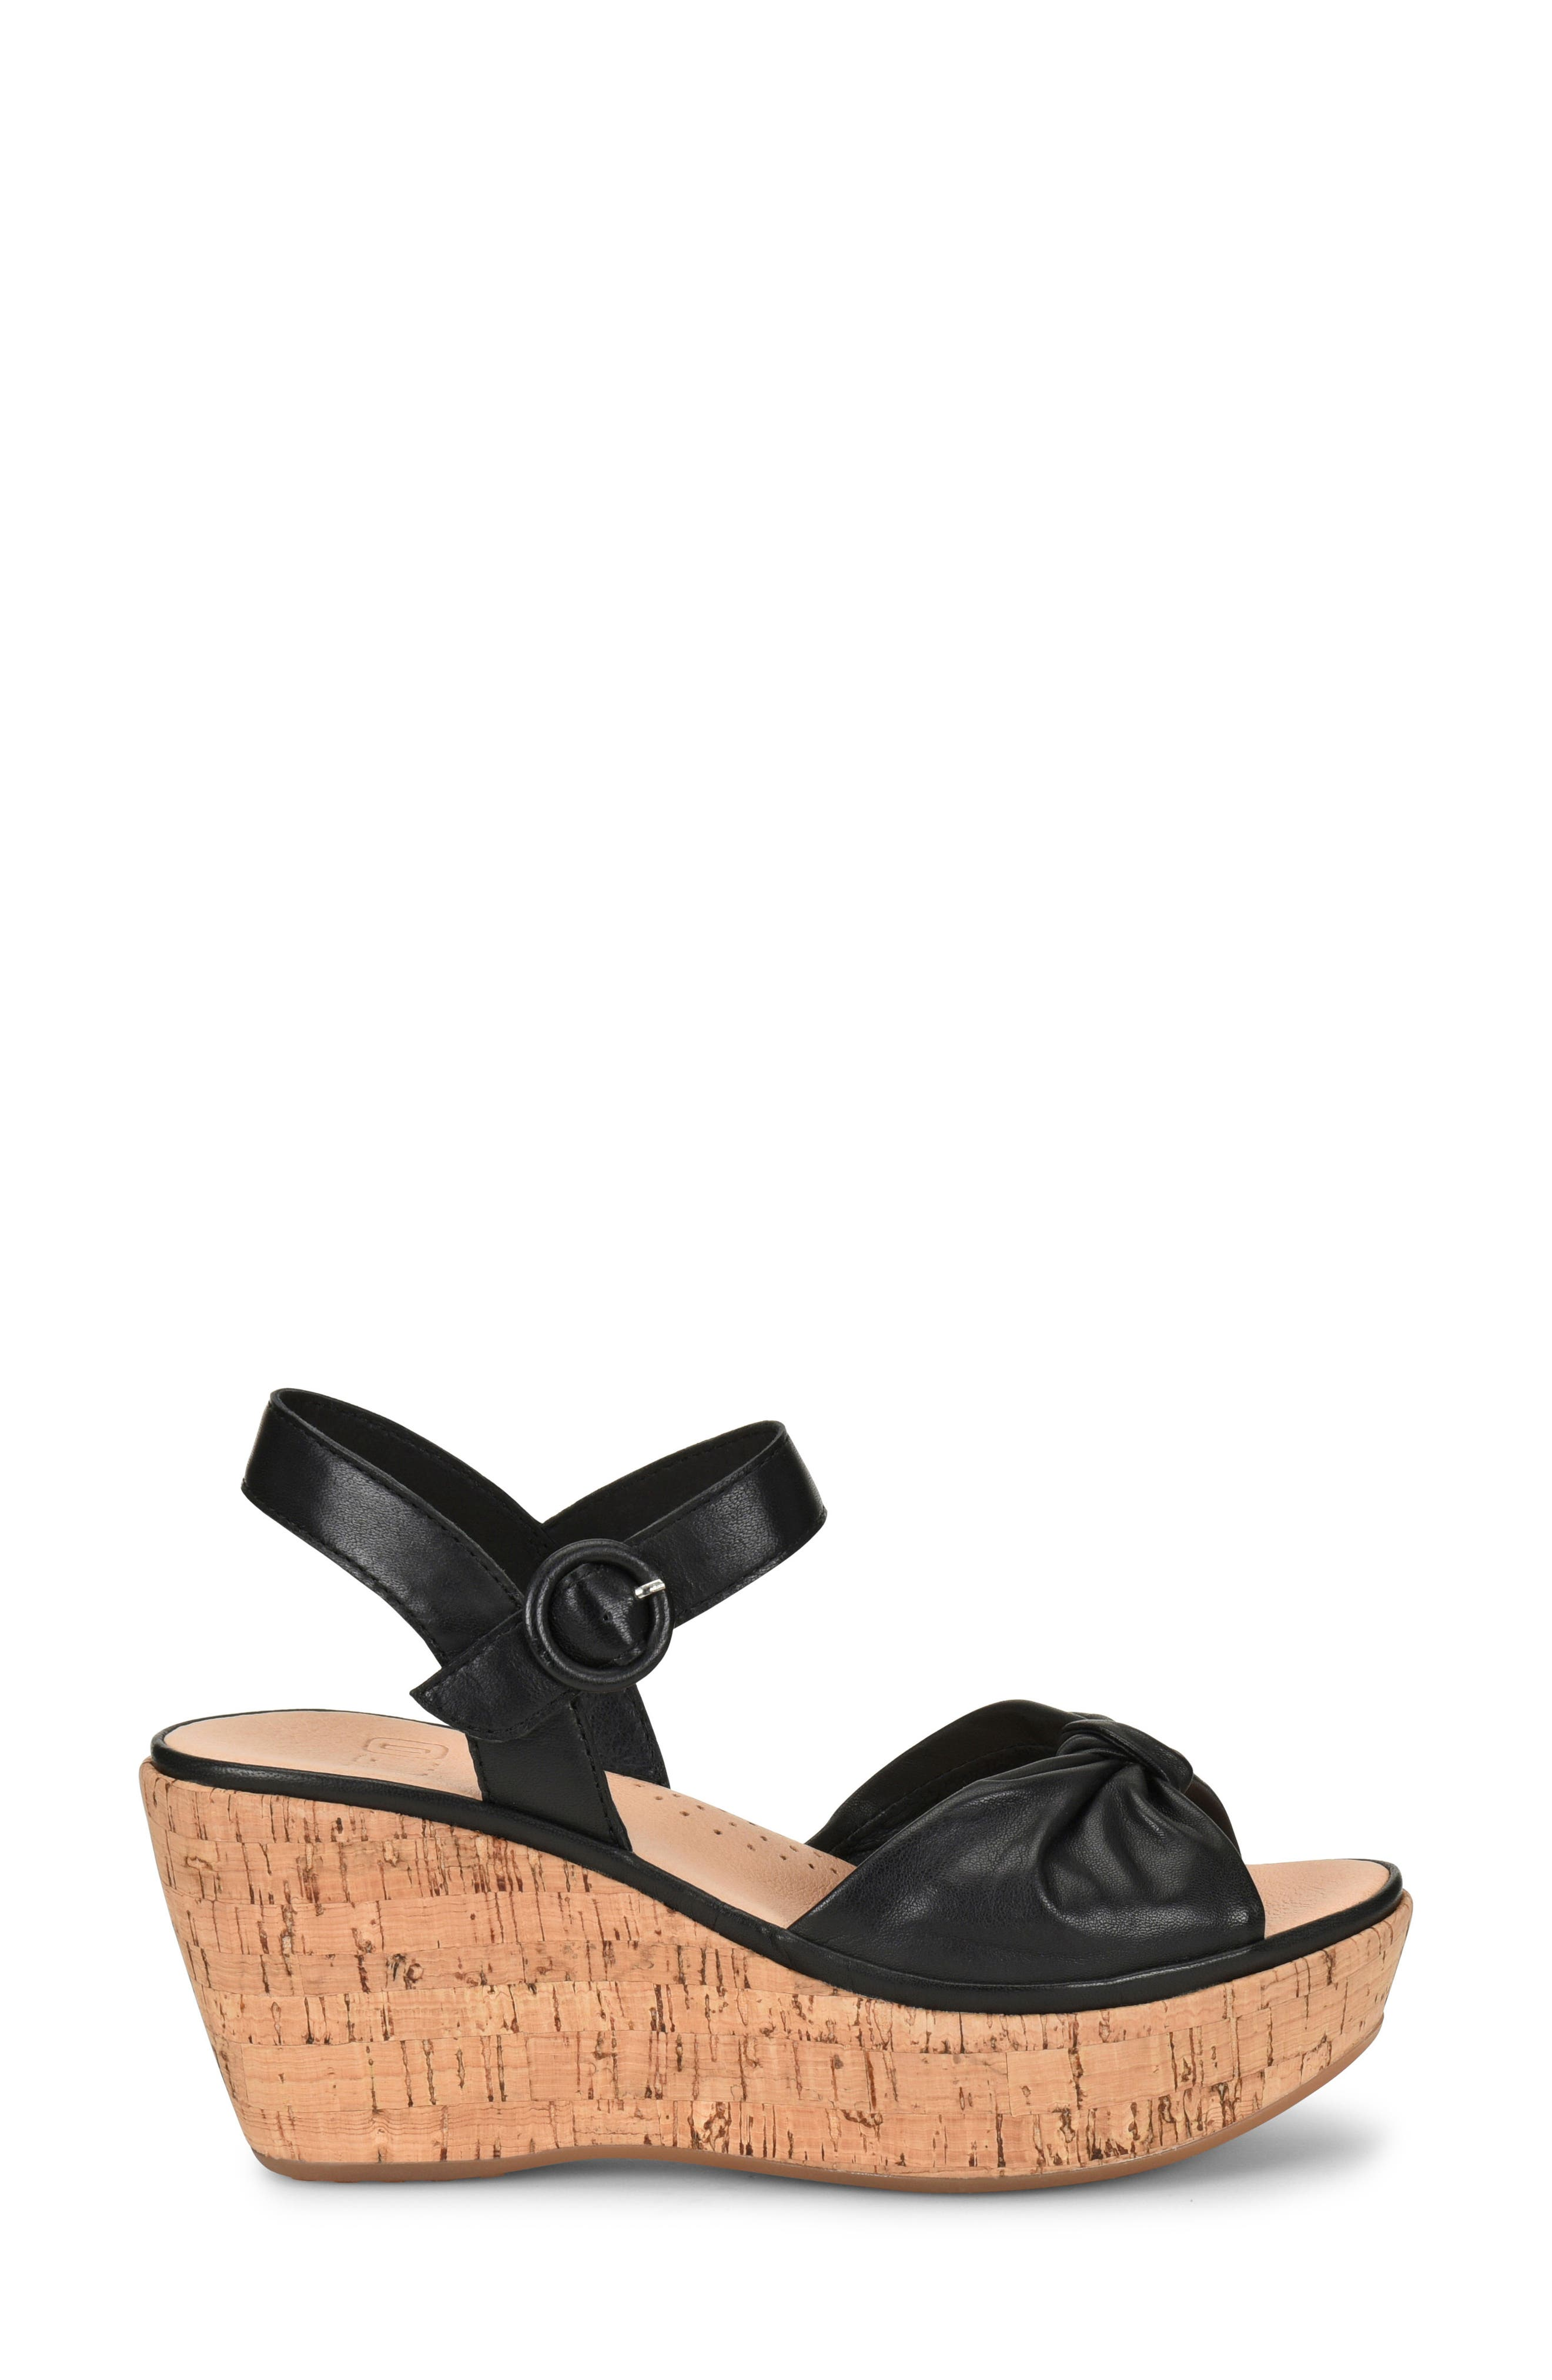 Heavenly Platform Wedge Sandal,                             Alternate thumbnail 3, color,                             BLACK LEATHER